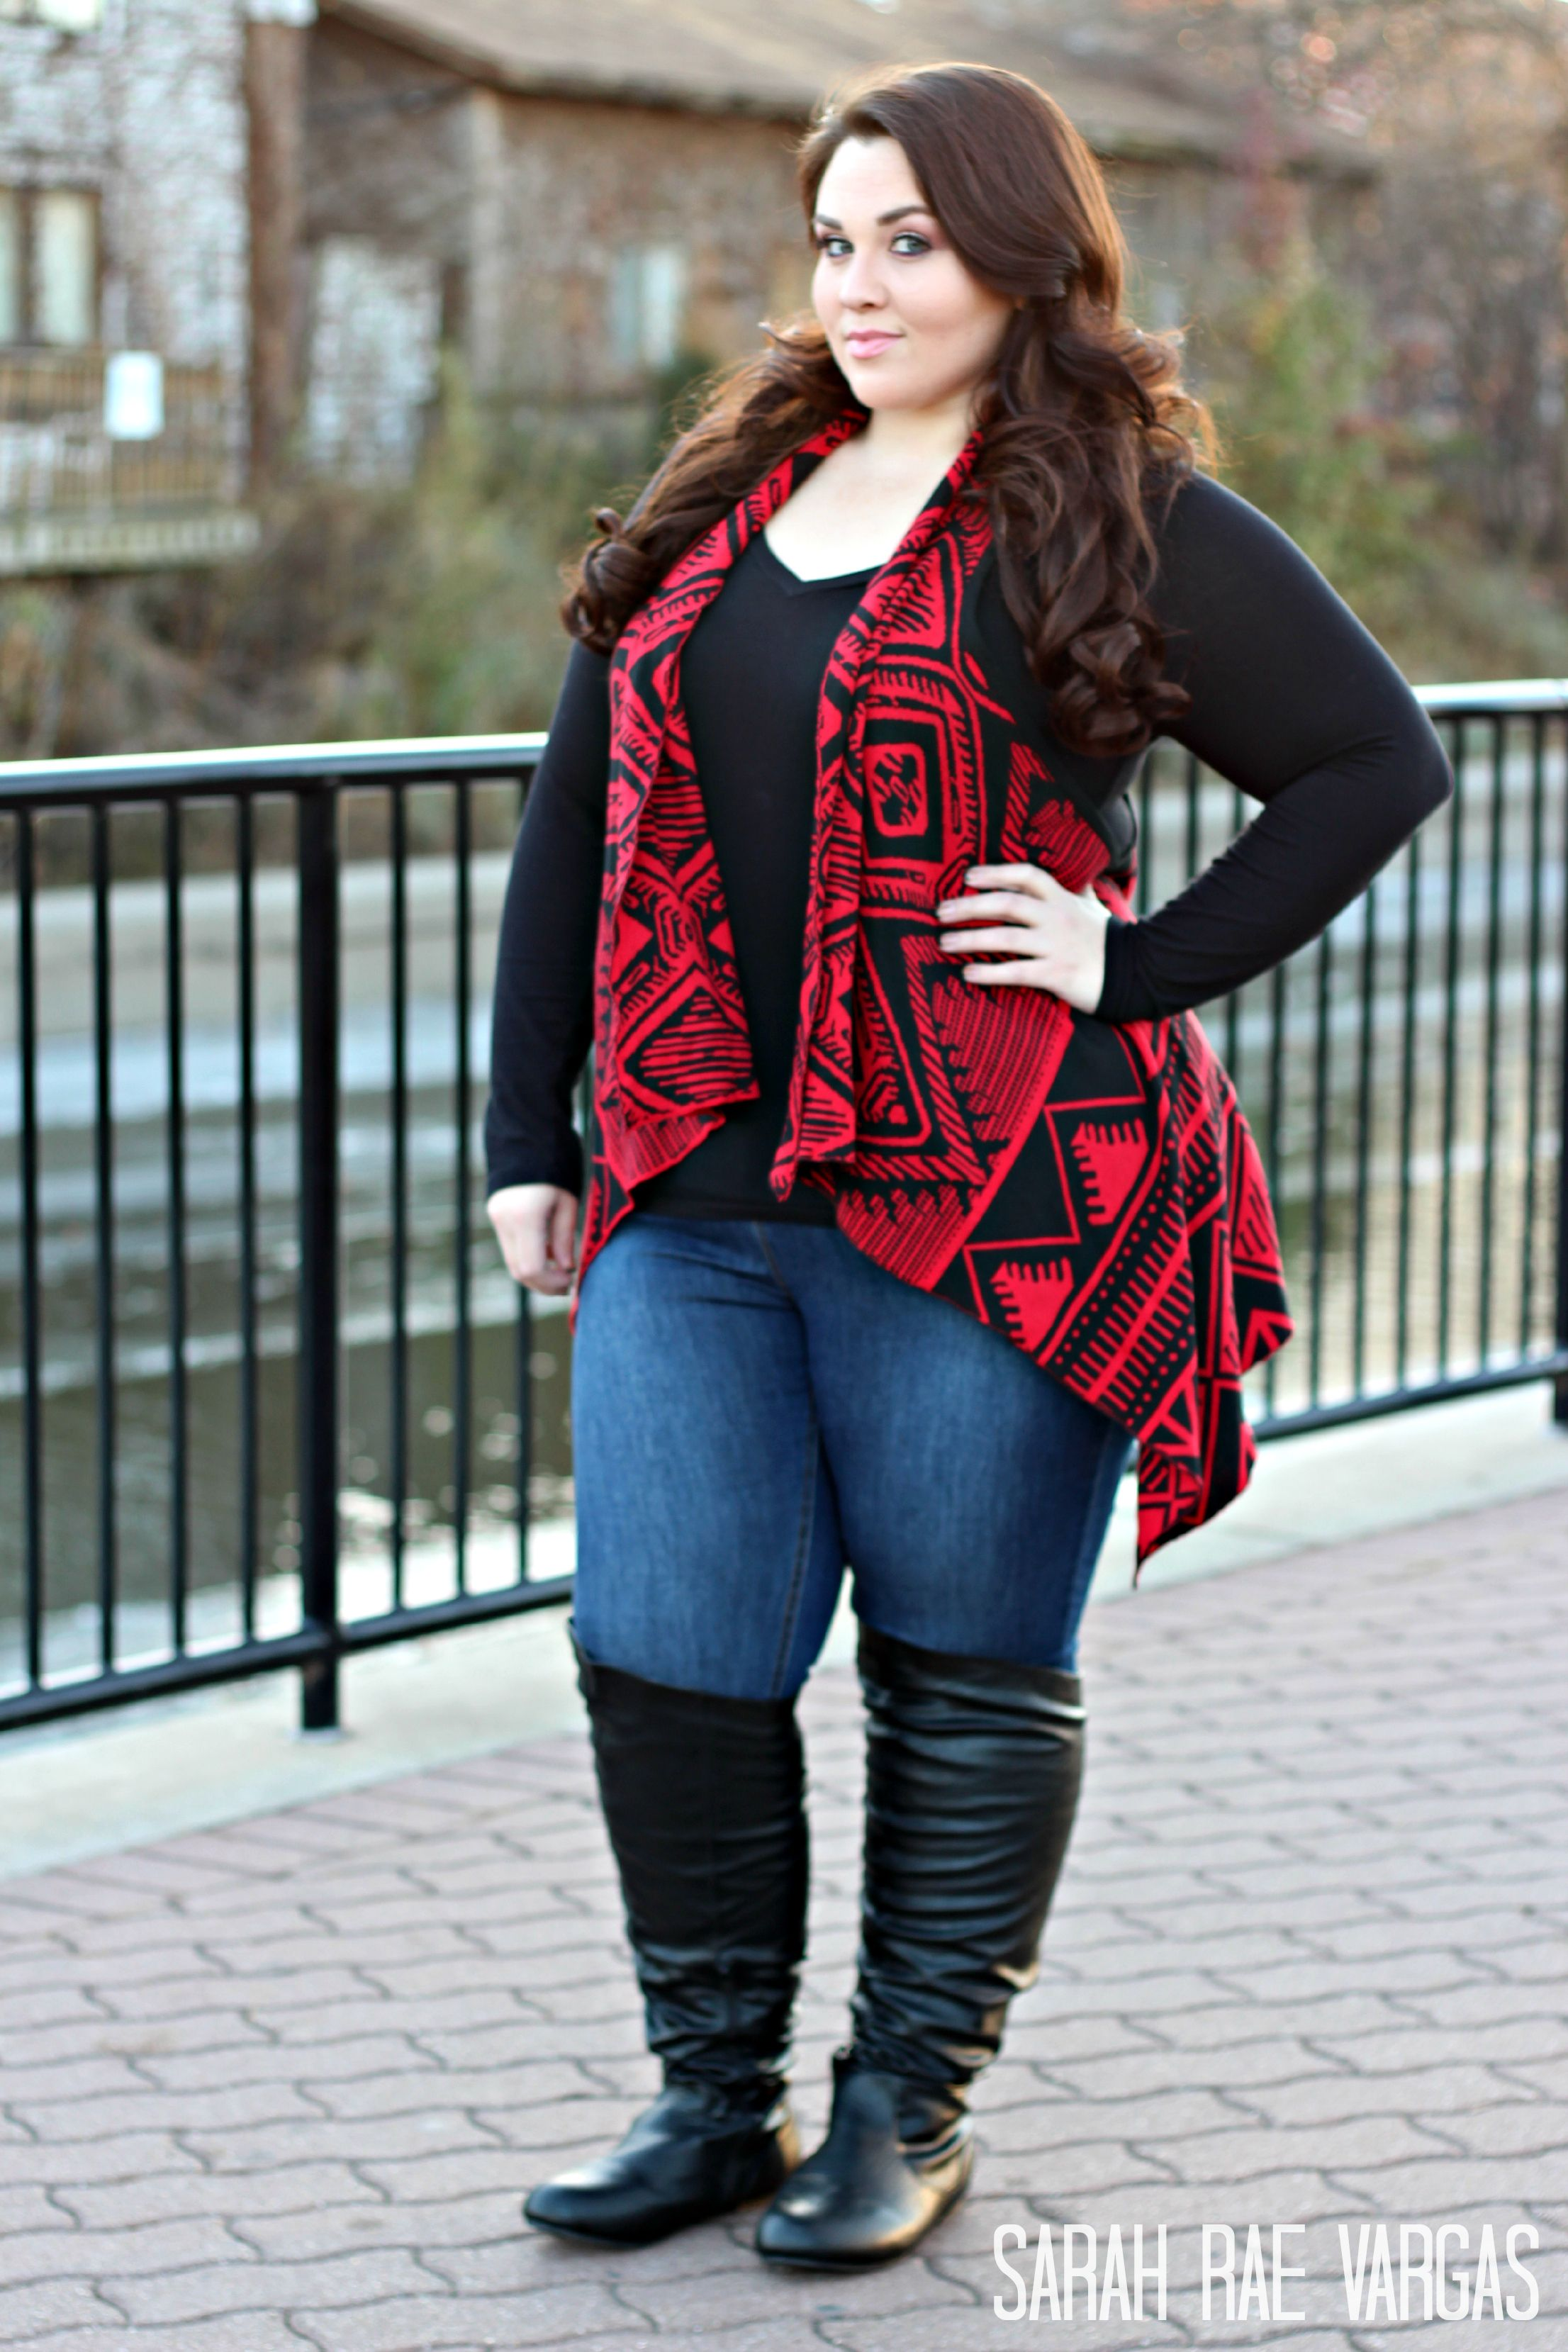 Wide Calf Boots Lookbook [Plus Size Fashion] | Fashion | Pinterest ...